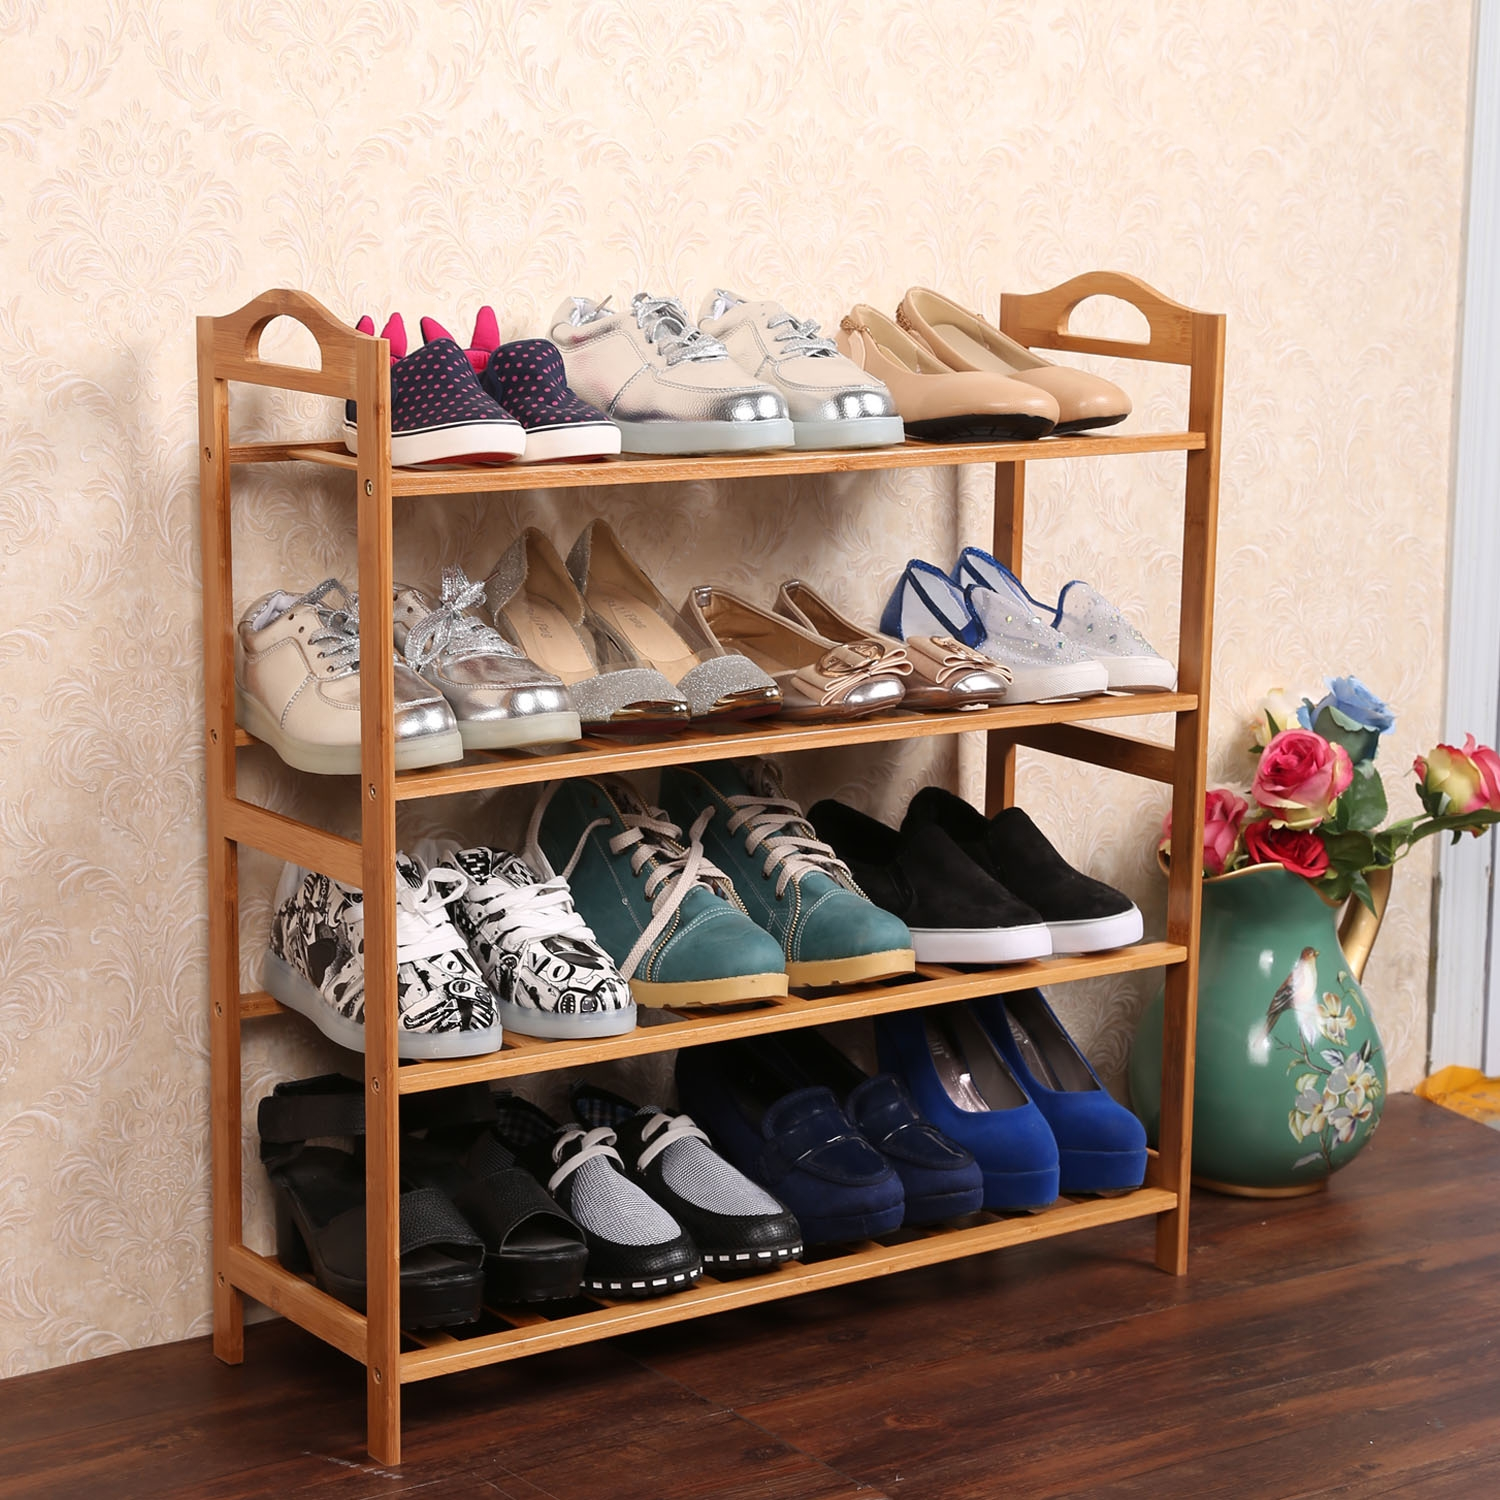 4 Tiers Shoe Rack Storage Organizer Natural Bamboo Plant Shelf, Home Storage Shelf for Shoes, Books and Flowerpots (Burlywood)